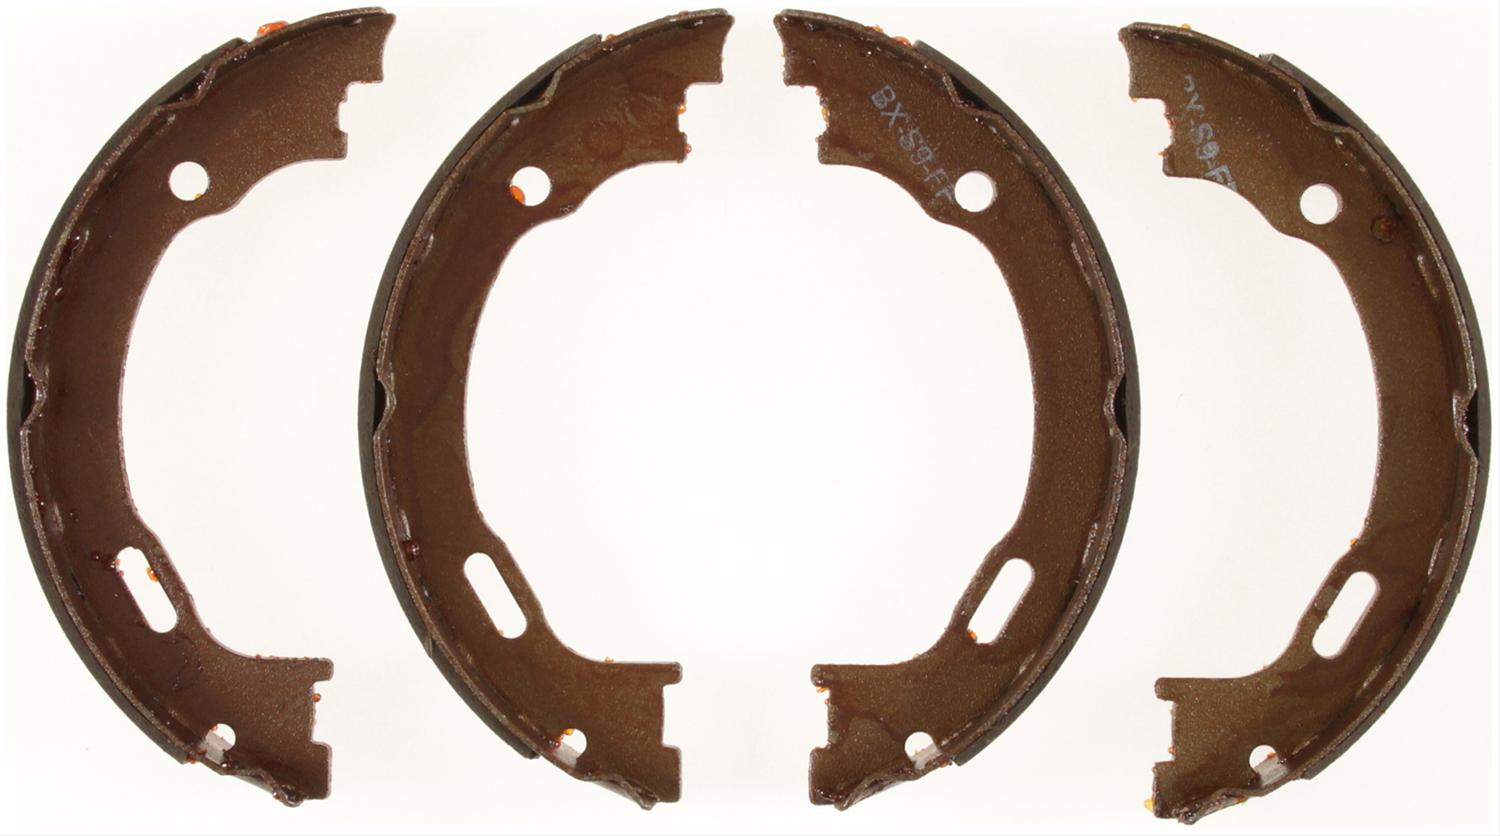 Bendix Brakes Parking Brake Shoes 05-up LX Cars, Challenger